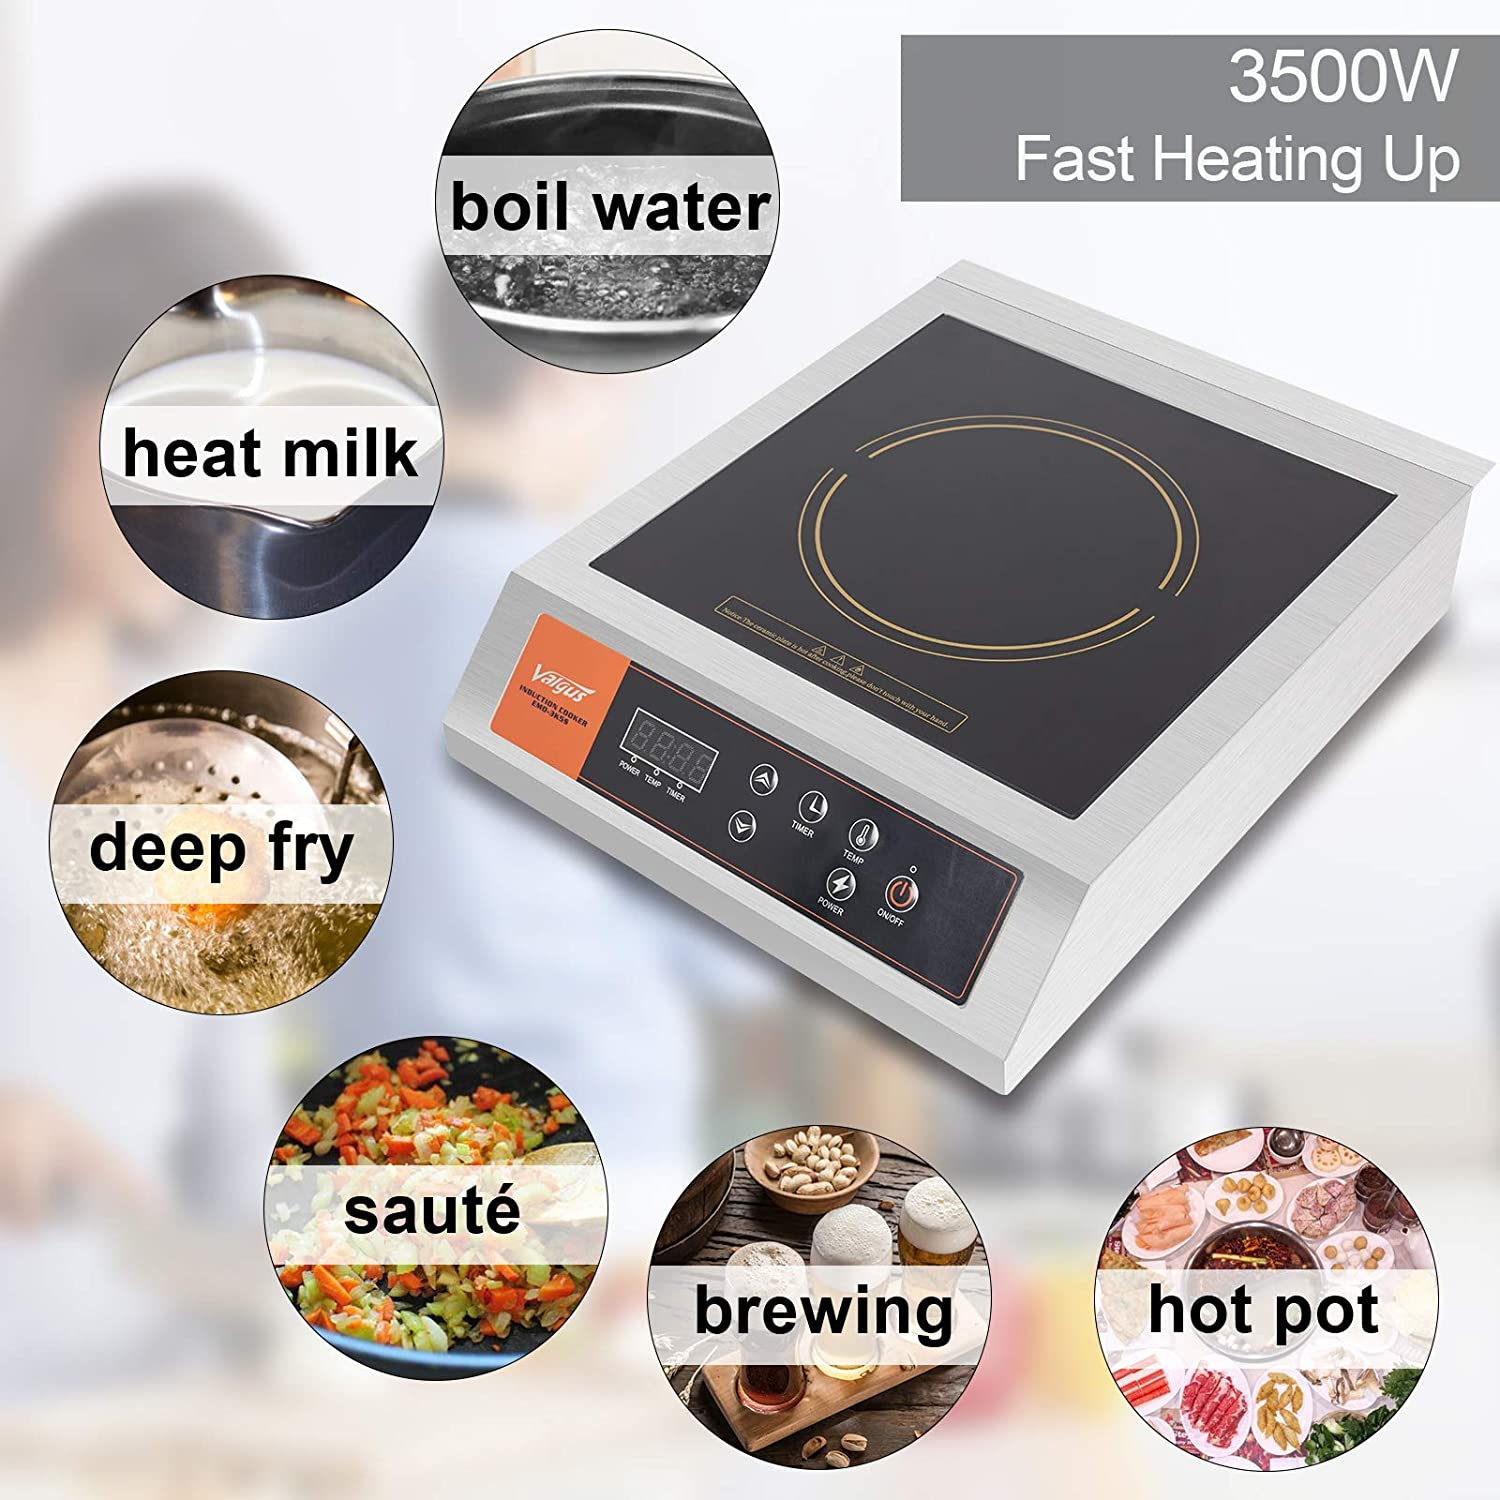 Industrial Kitchens and Catering Services Portable Quickly Heating Countertop Burner with Sensor Touch and LCD Screen for Home Brewing Beer Valgus 3500W Commercial Stainless Steel Electric Induction Cooktop